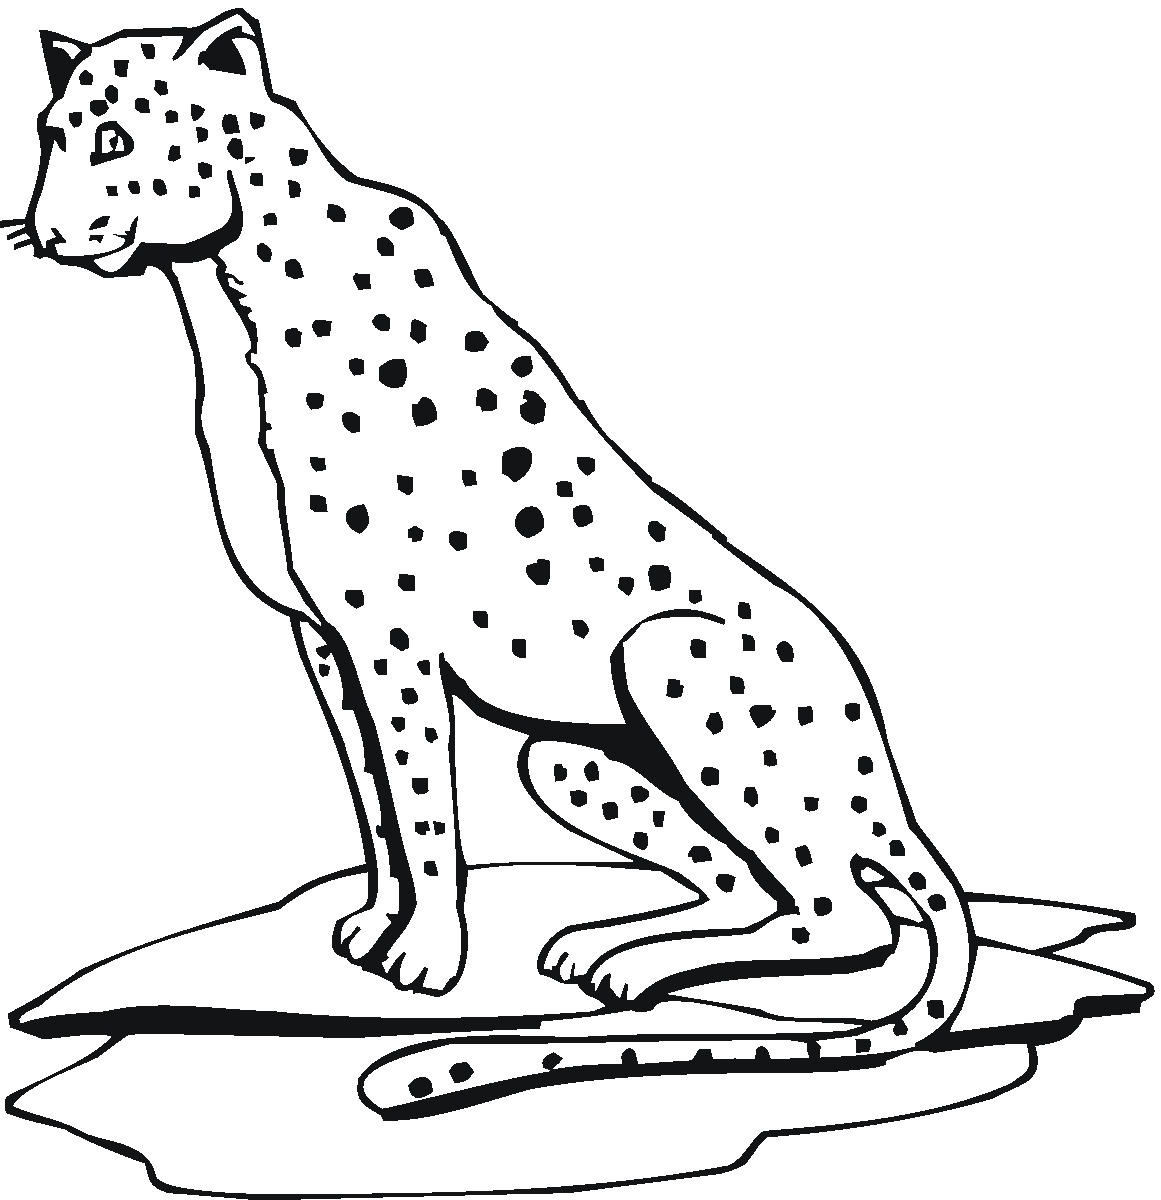 cheetah images coloring pages - photo#7